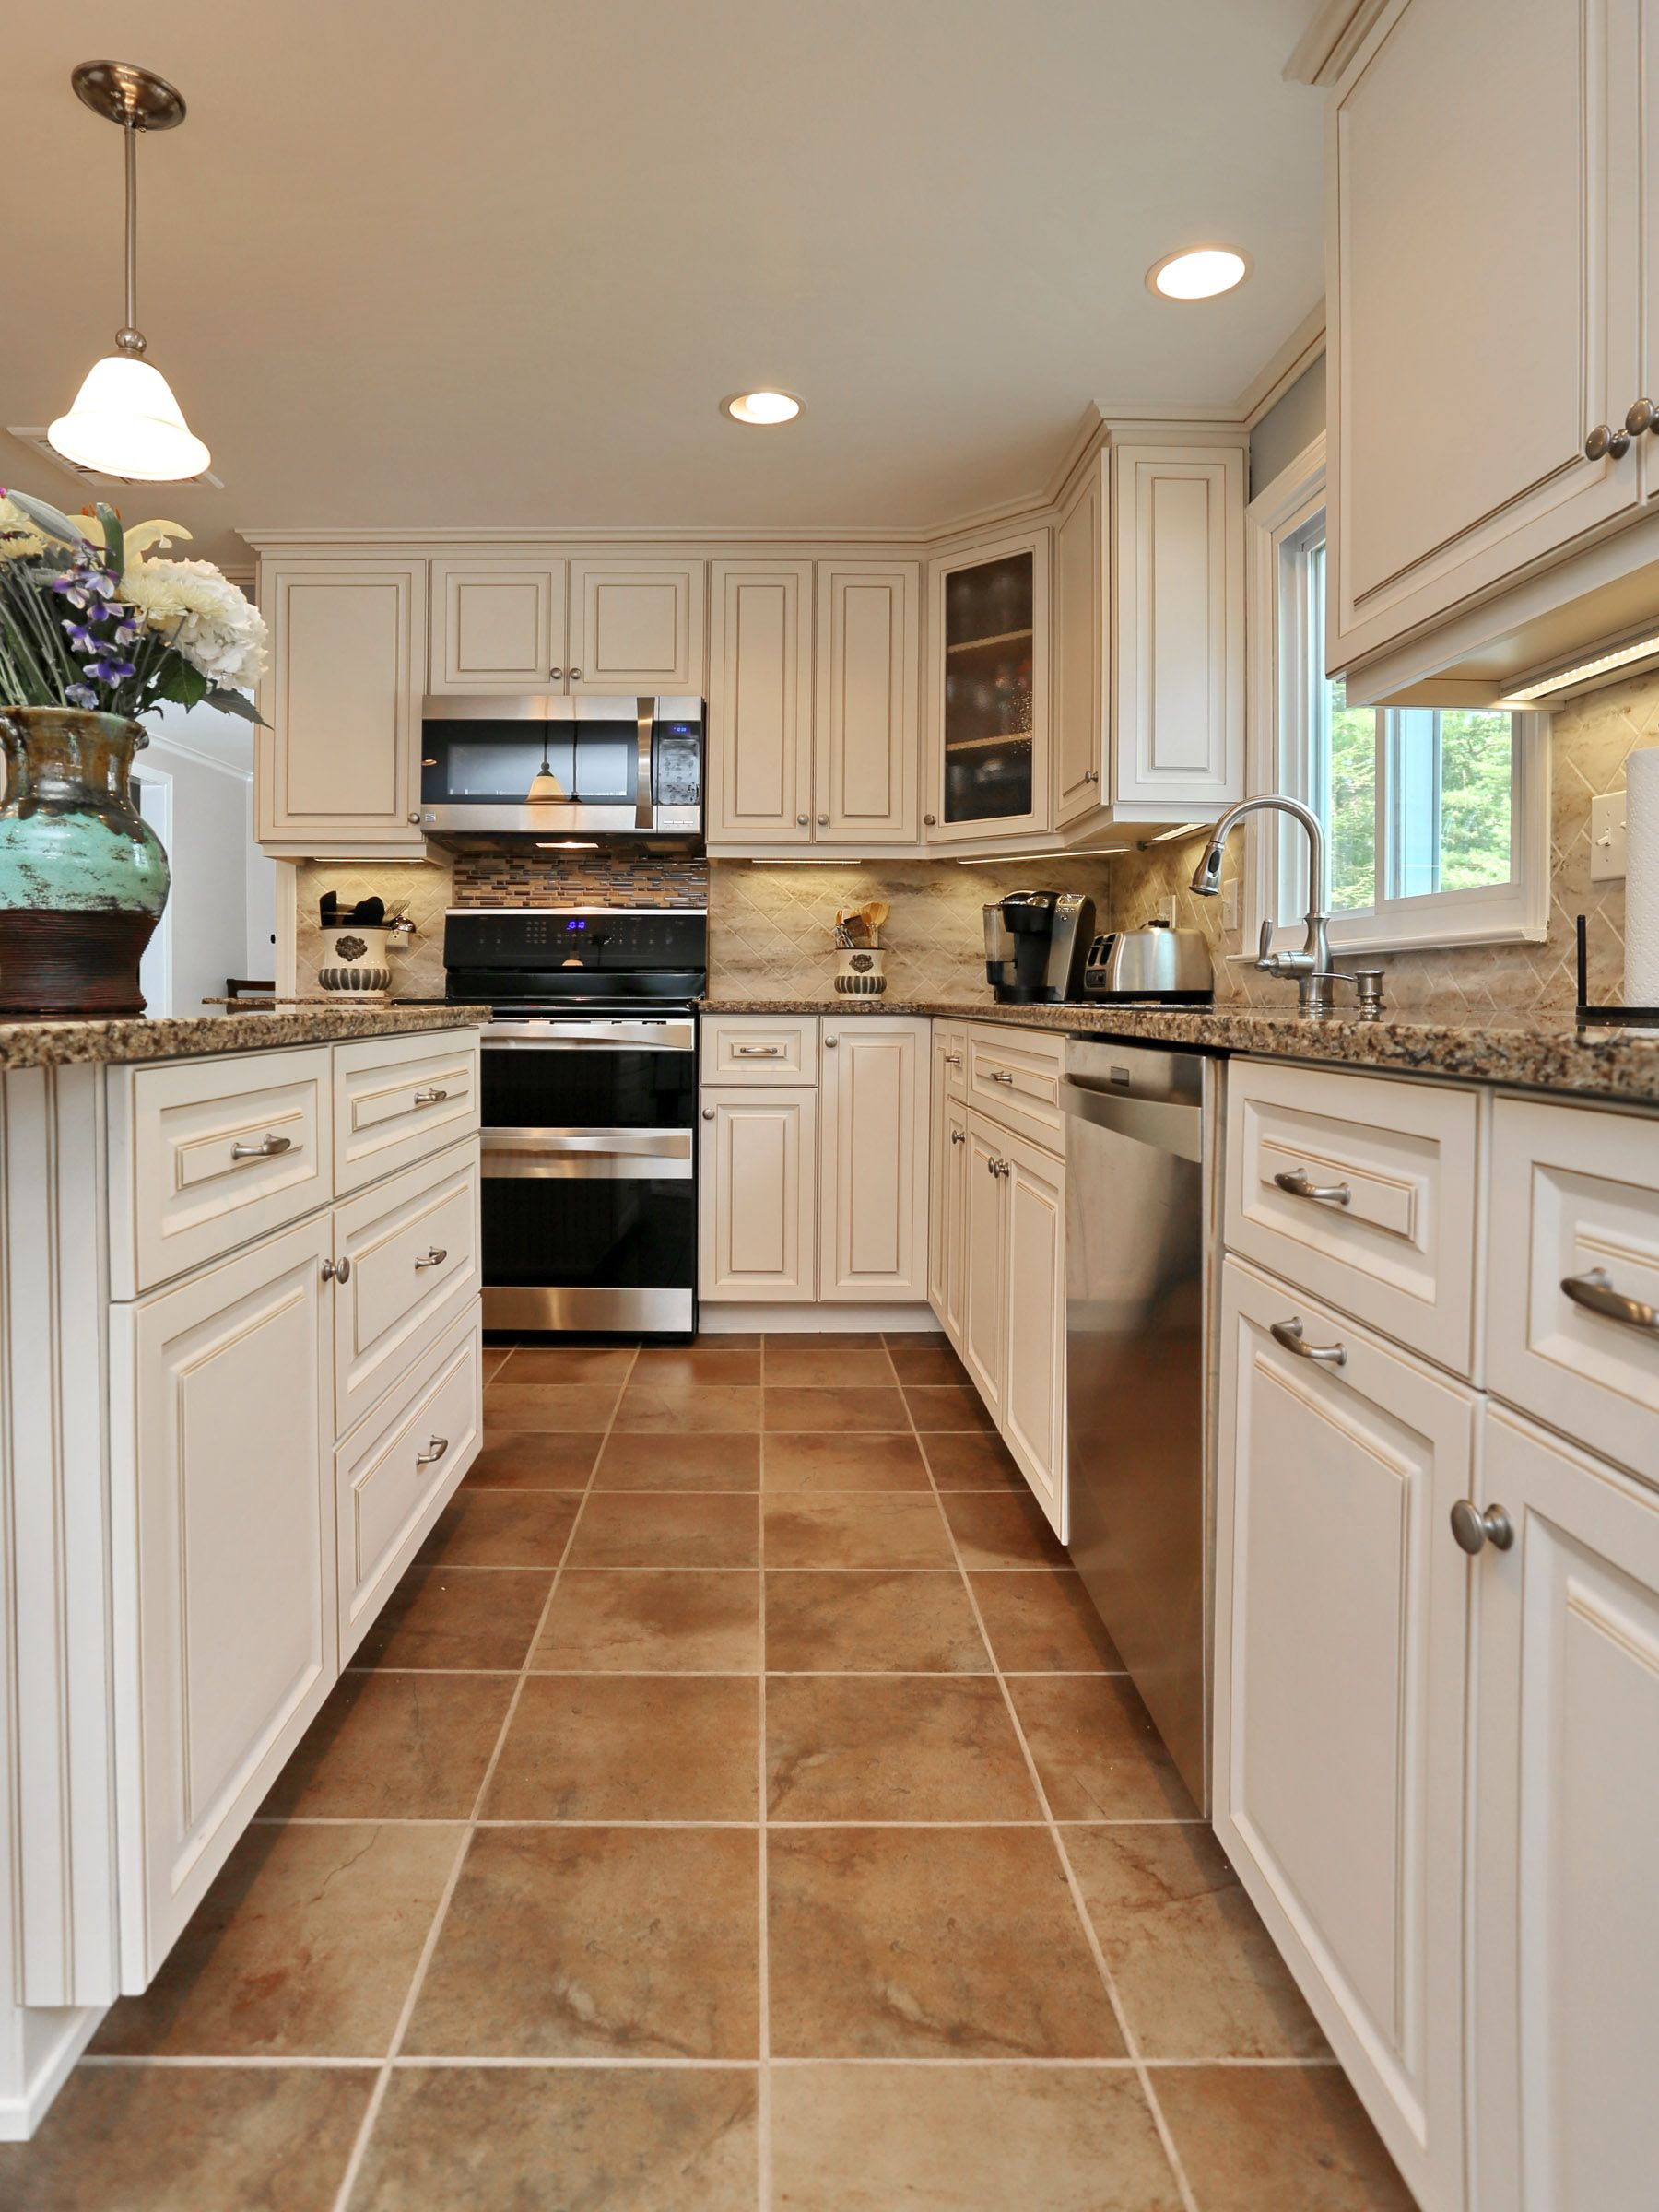 White Tile Floor Kitchen Have You Ever Seen A Canterbury Kitchen Beautiful The Floor